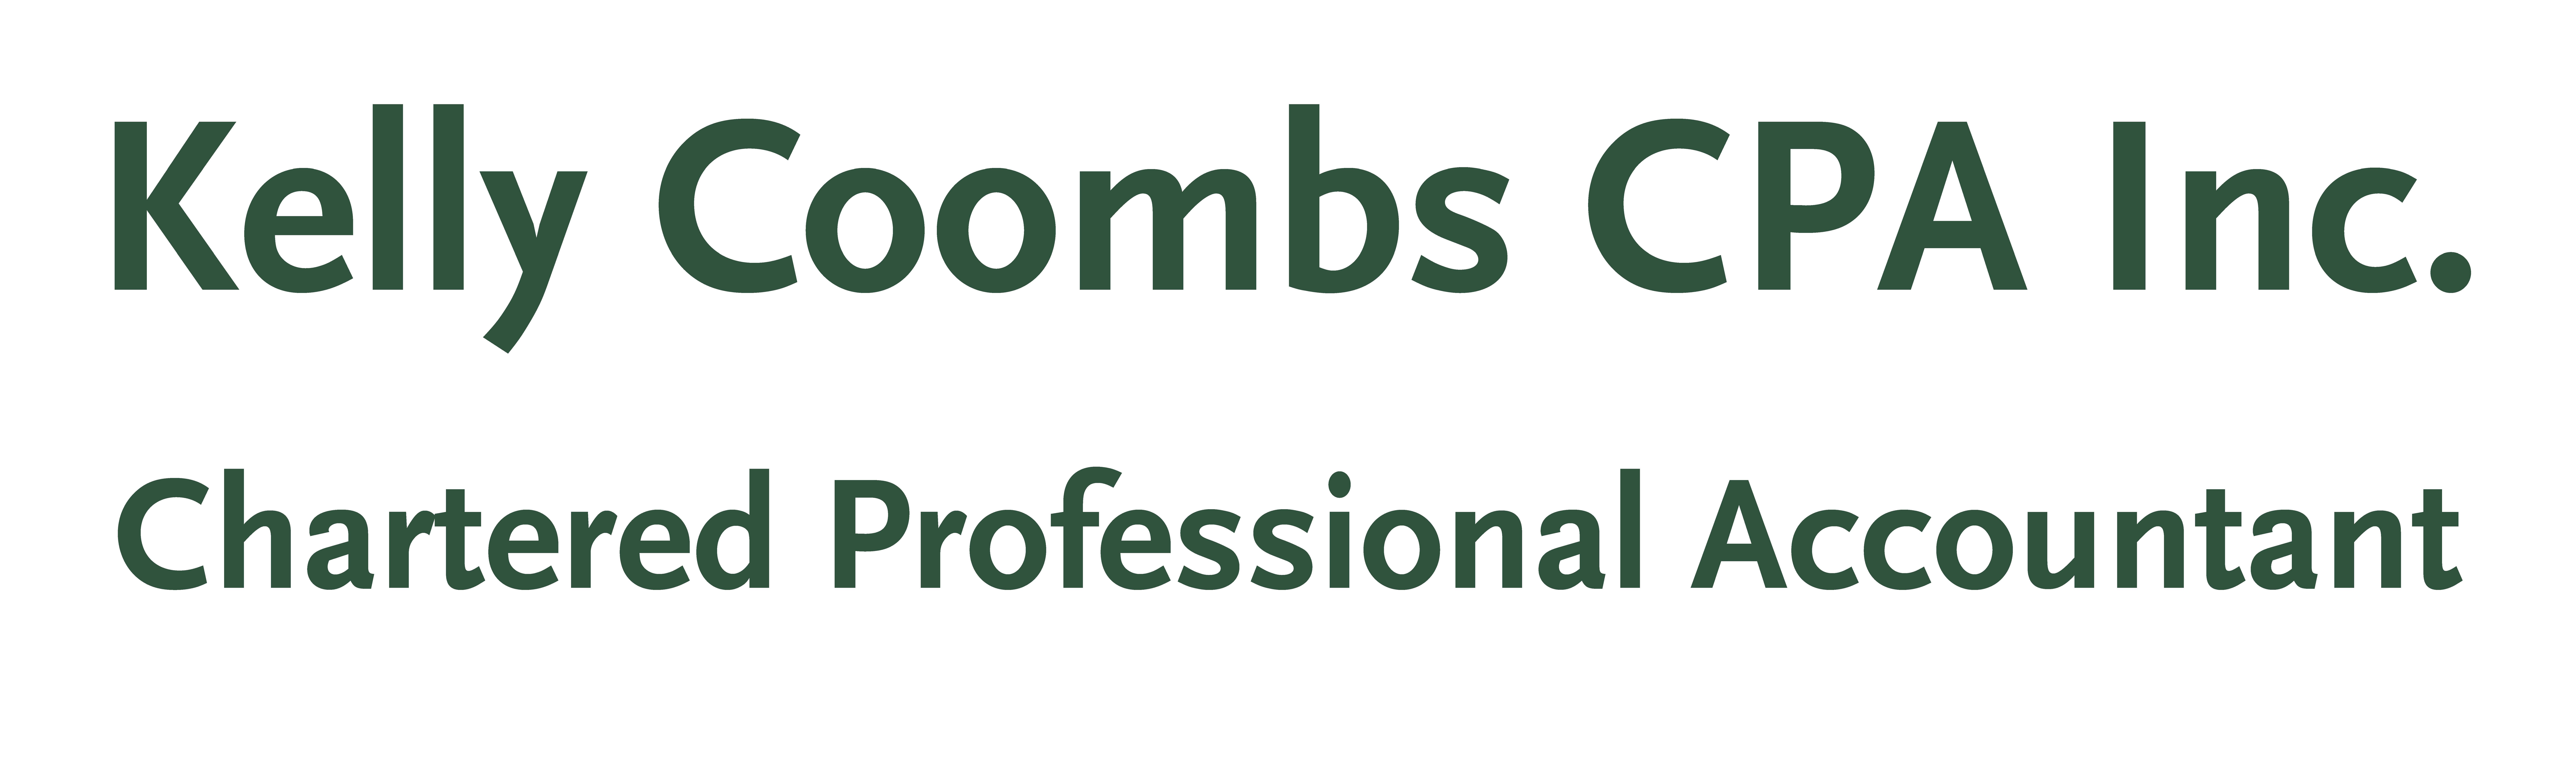 Kelly Coombs Chartered Accountant Inc.